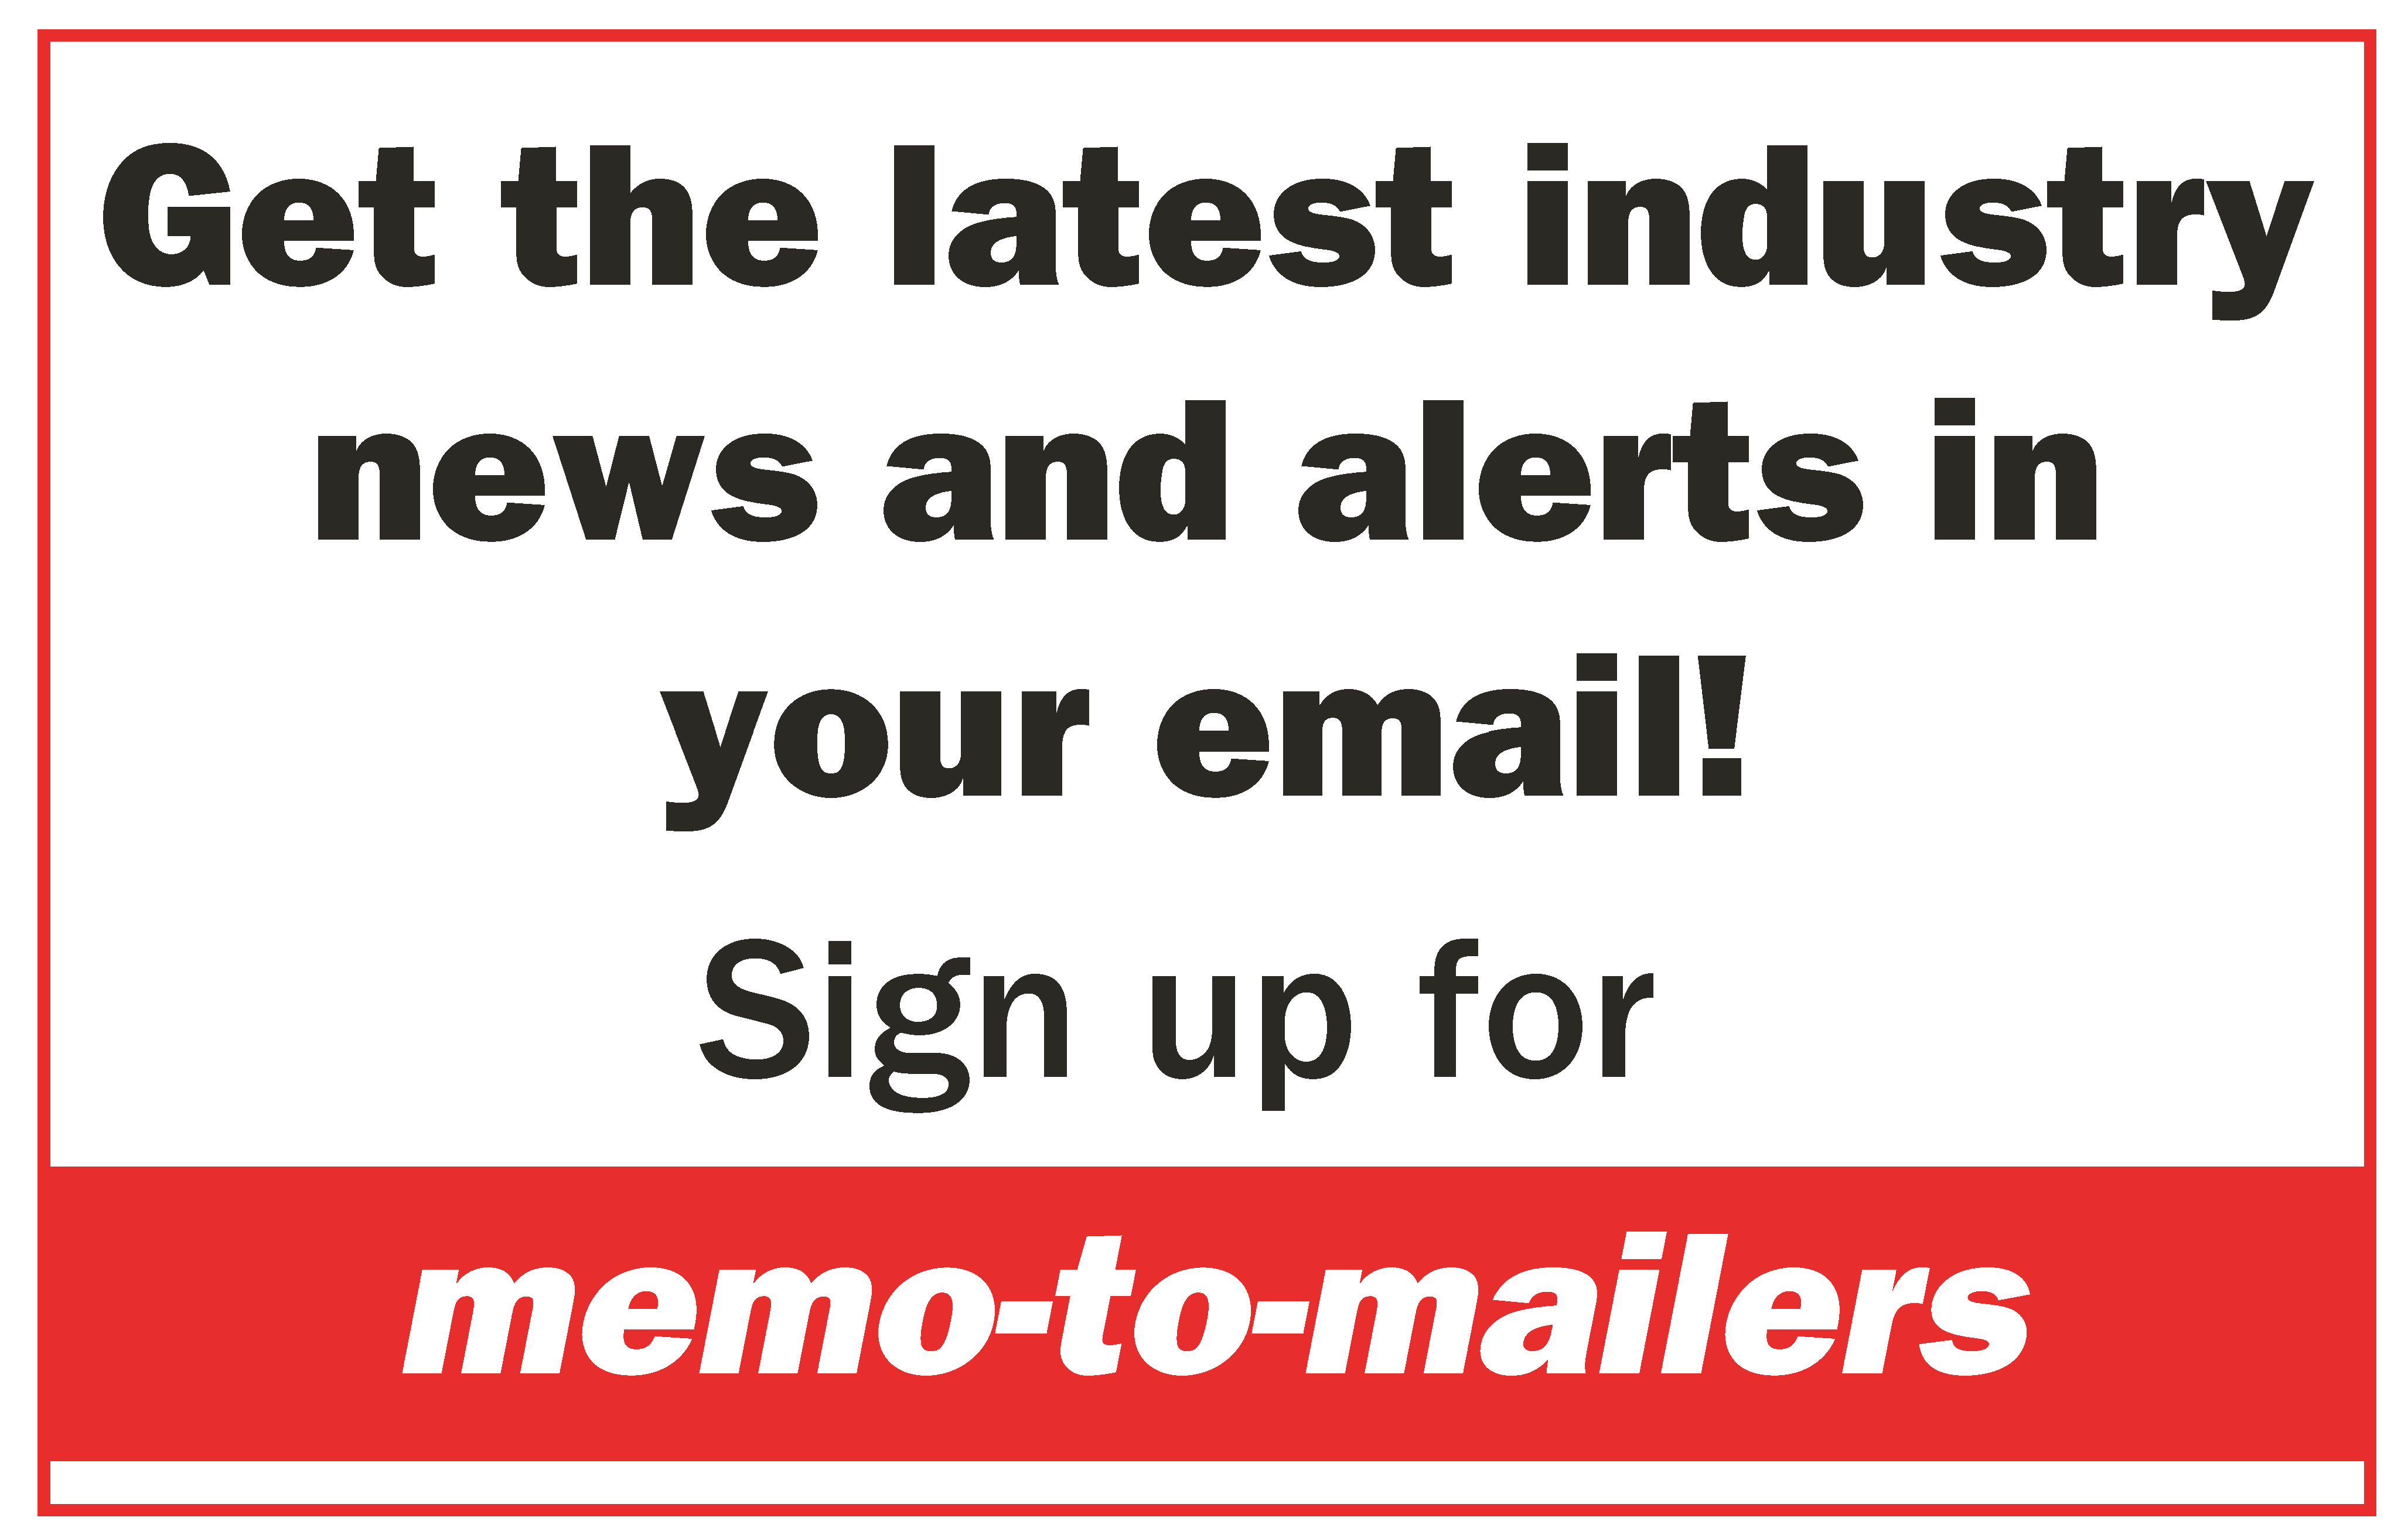 memo-sign-up-mailomg